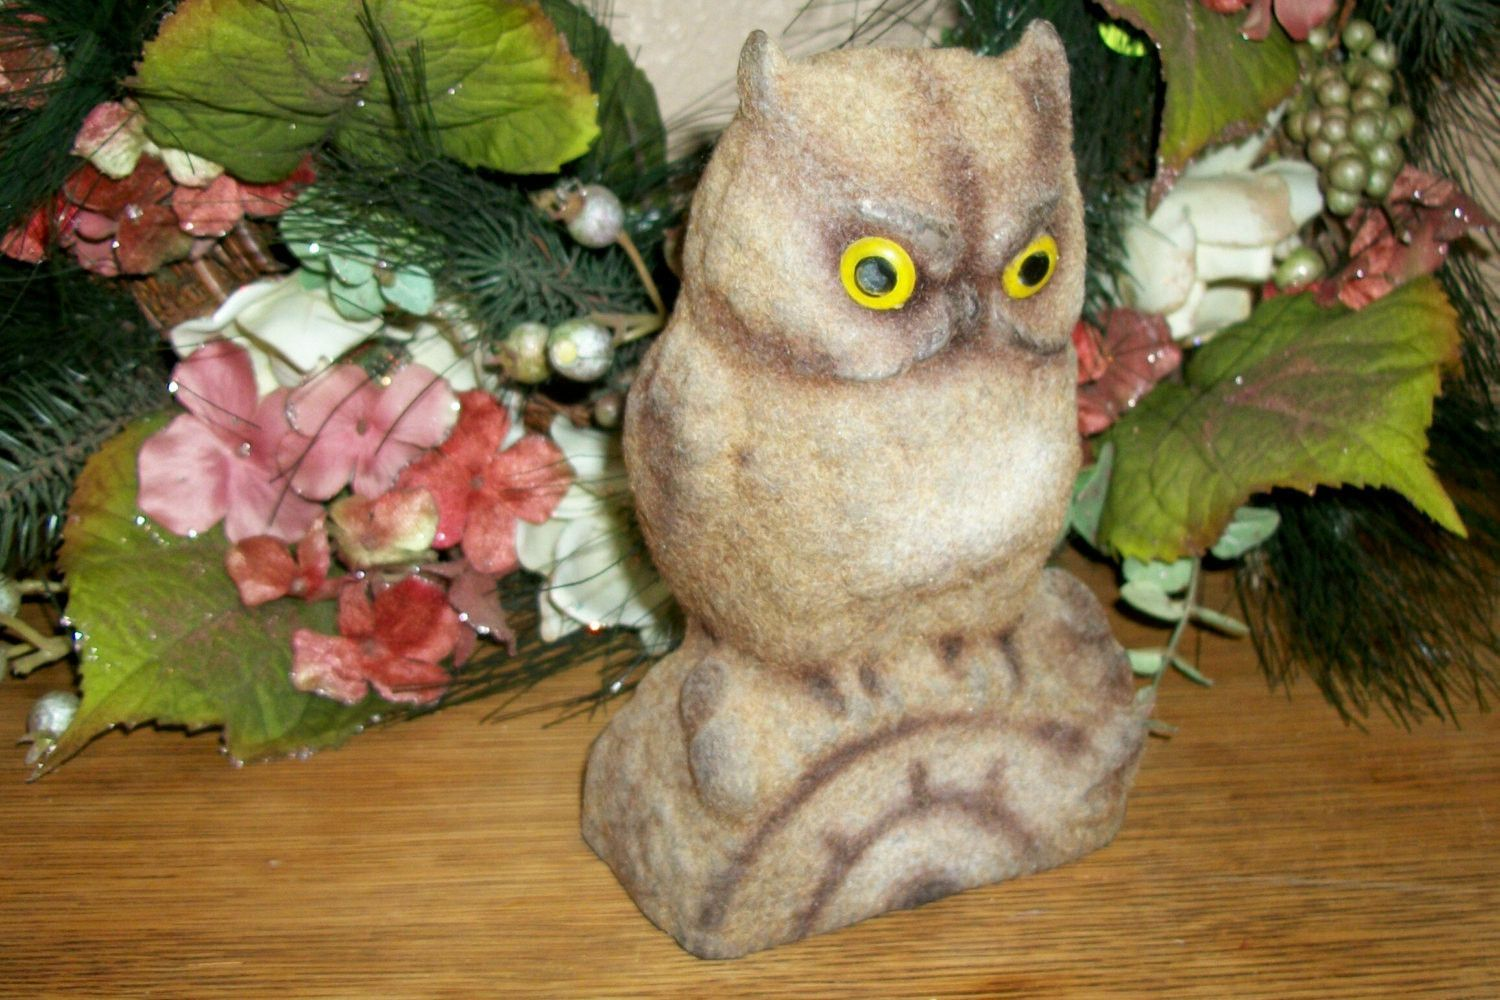 Flocked Plastic Brown Owl Figurine Coin Bank Vintage 1960's Collectible Bird Statuette Woodland Home Decor